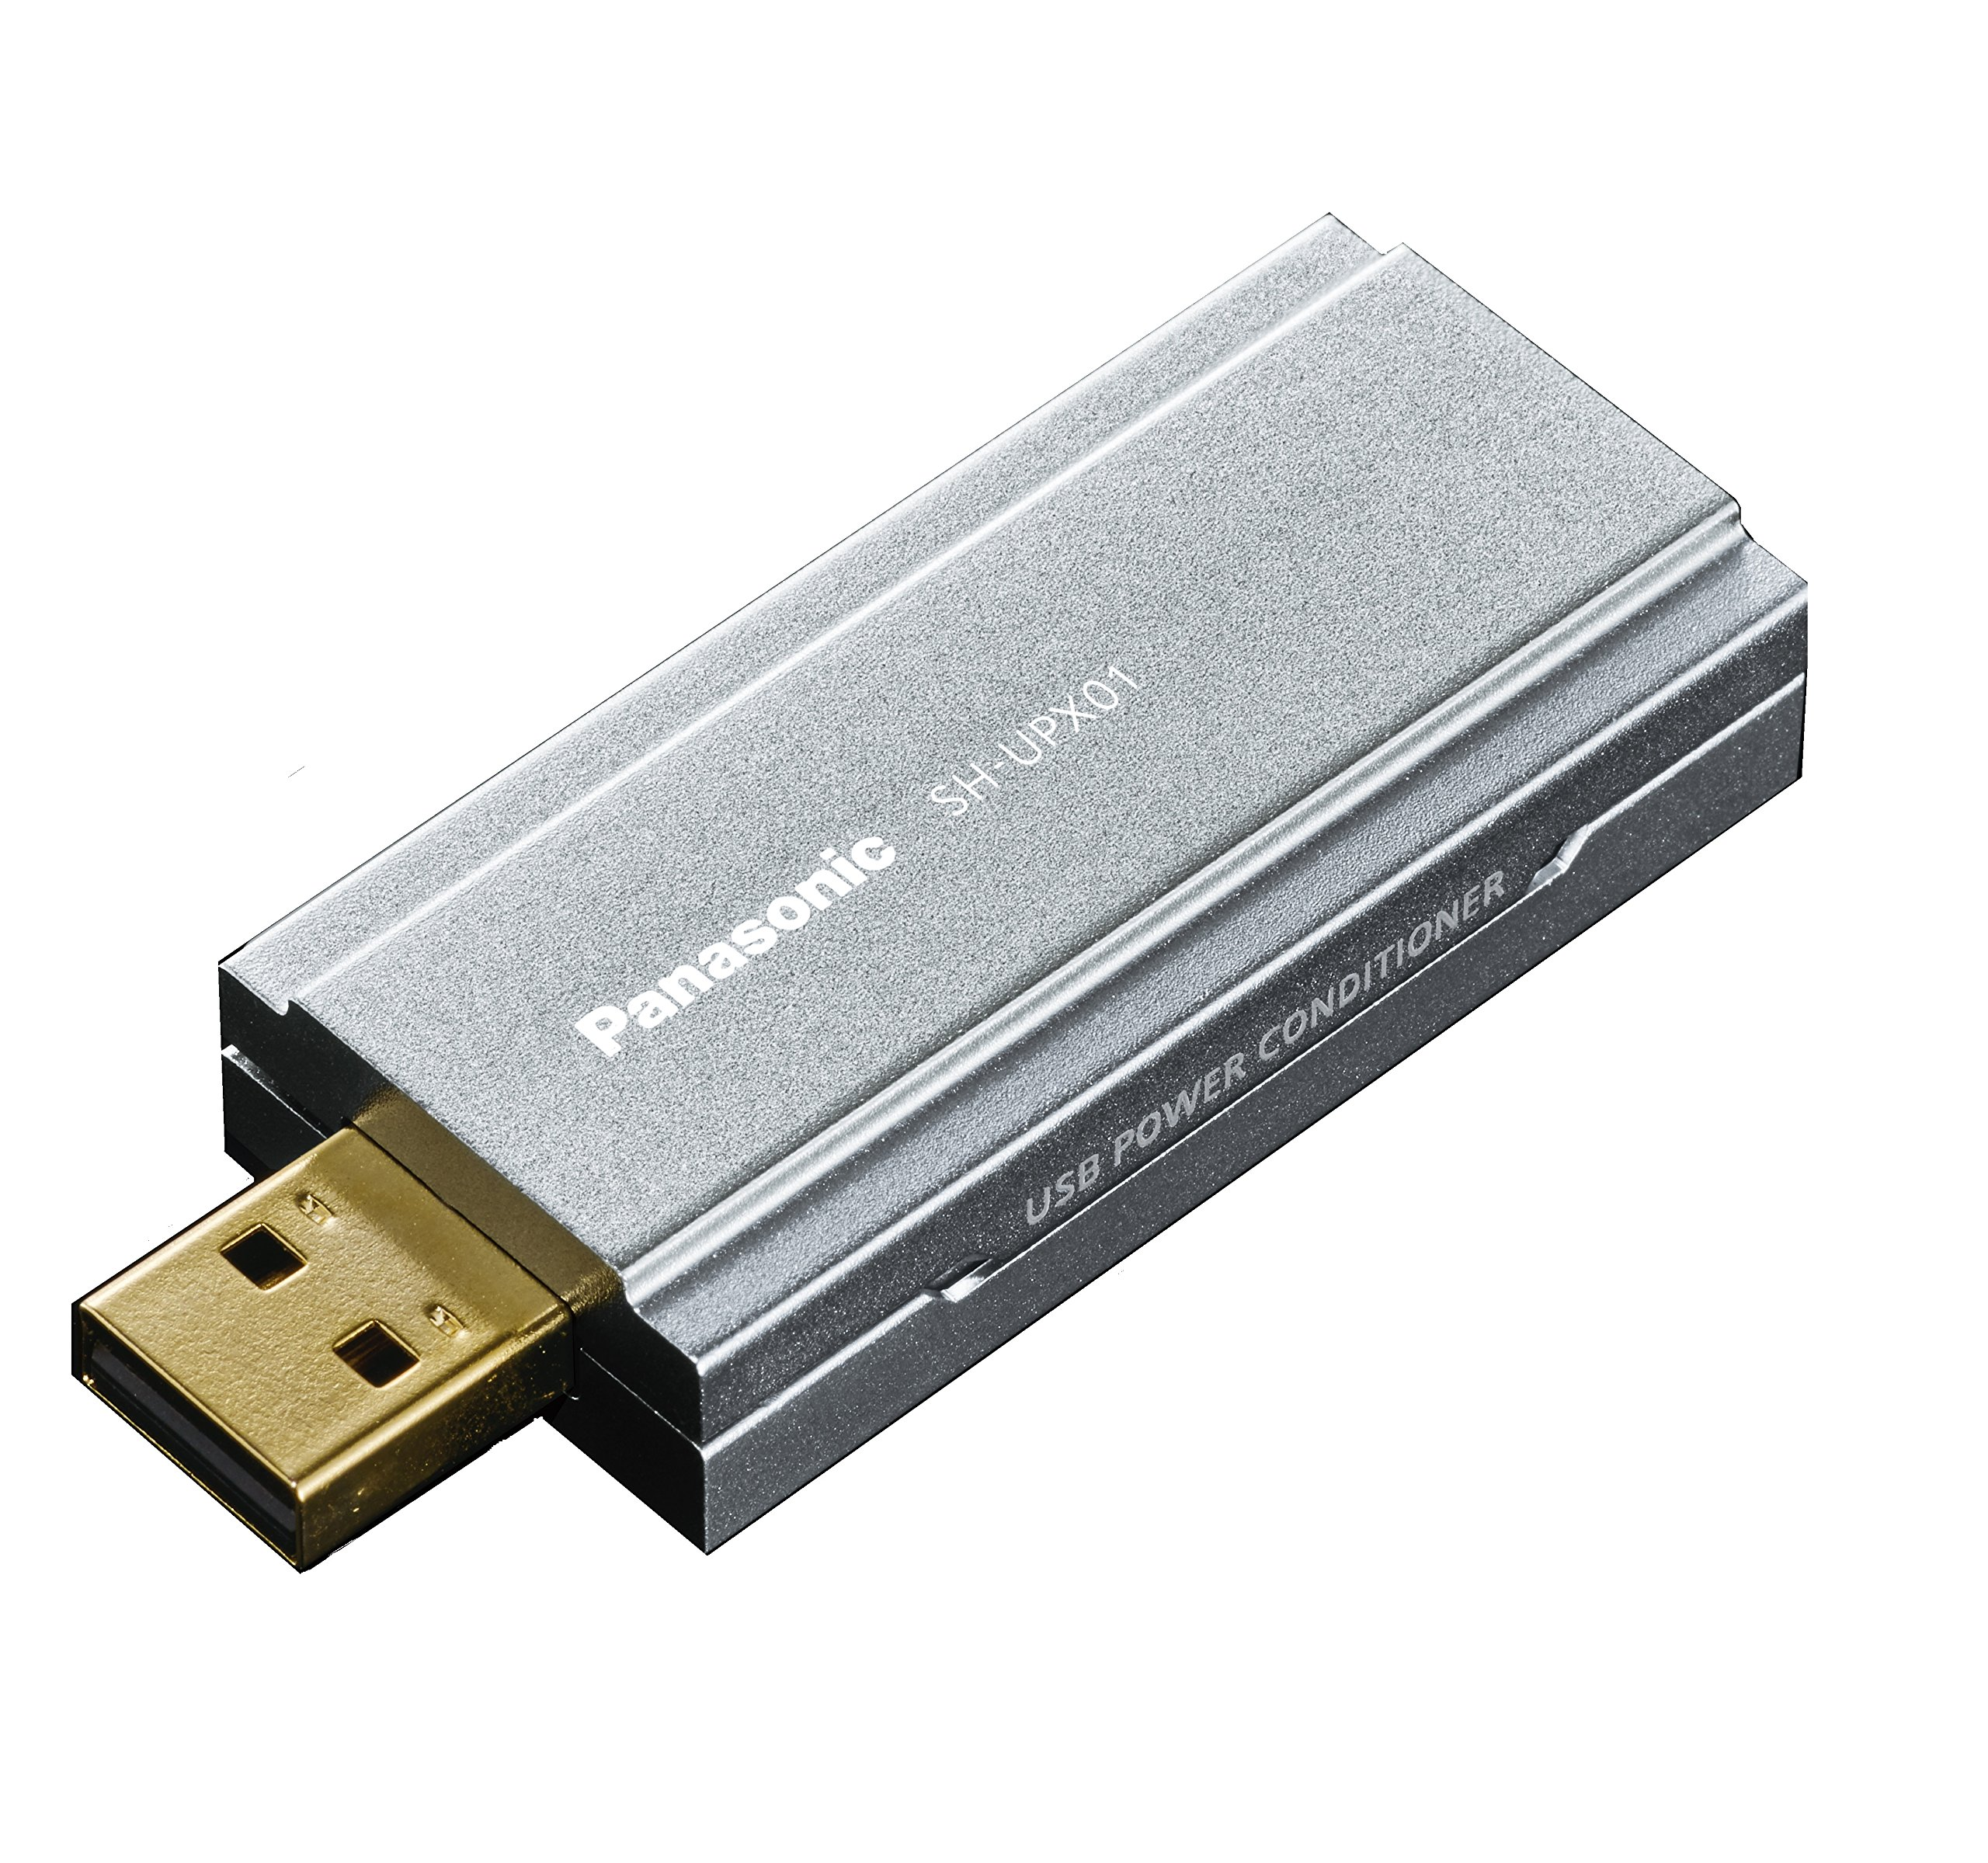 Panasonic USB Power Conditioner SH-UPX01【Japan Domestic genuine products】 【Ships from JAPAN】